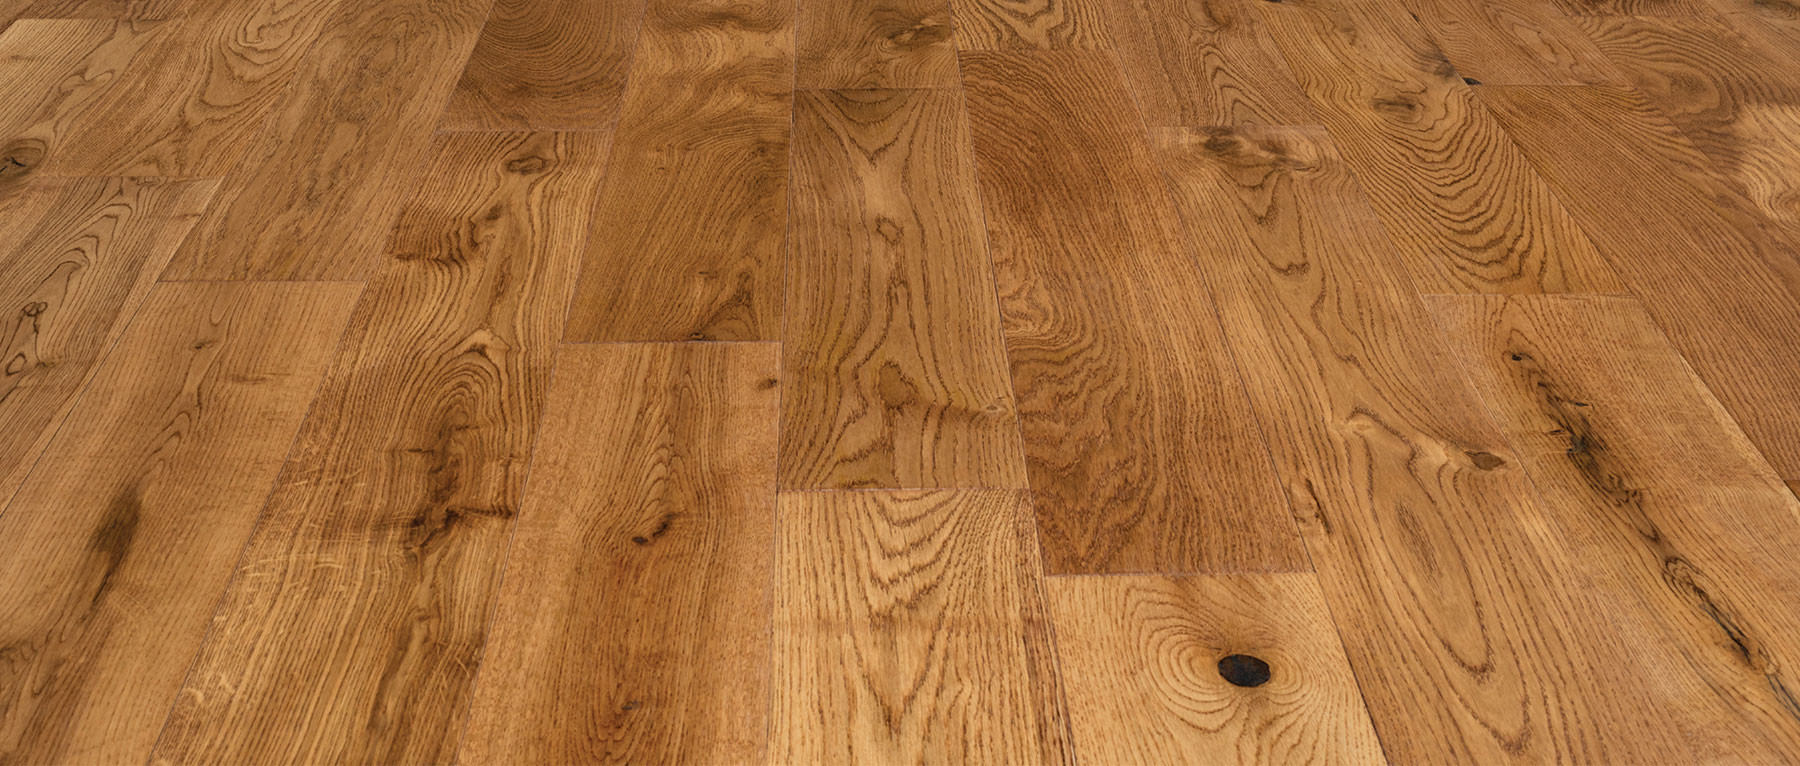 hardwood floor stain colors for white oak of harbor oak 5″ white oak sand etx surfaces throughout etx surfaces harbor oak white oak sand wood flooring